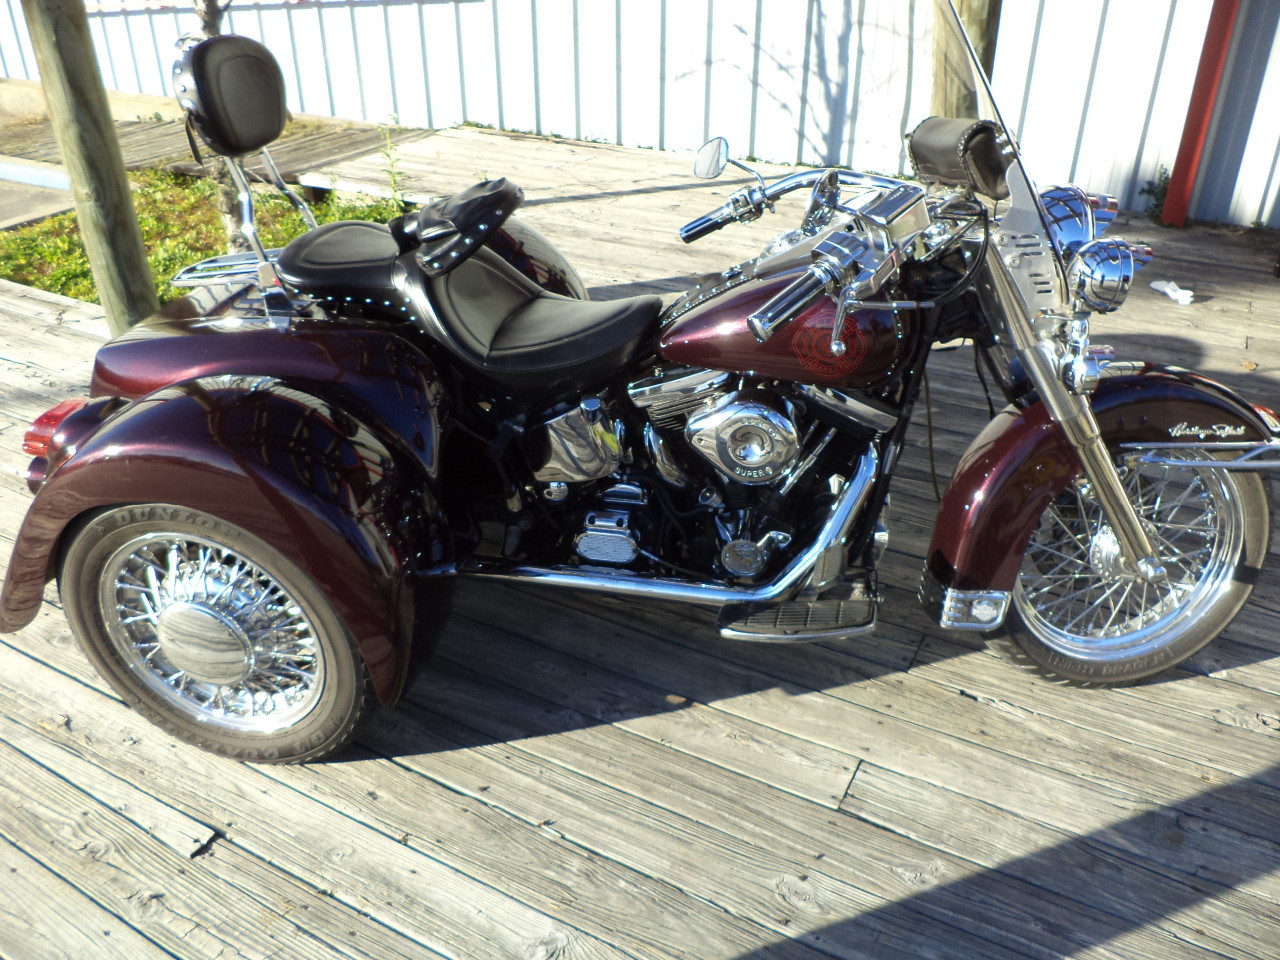 1992 Harley Davidson FLSTC HERITAGE SOFTAIL CLASSIC, motorcycle listing